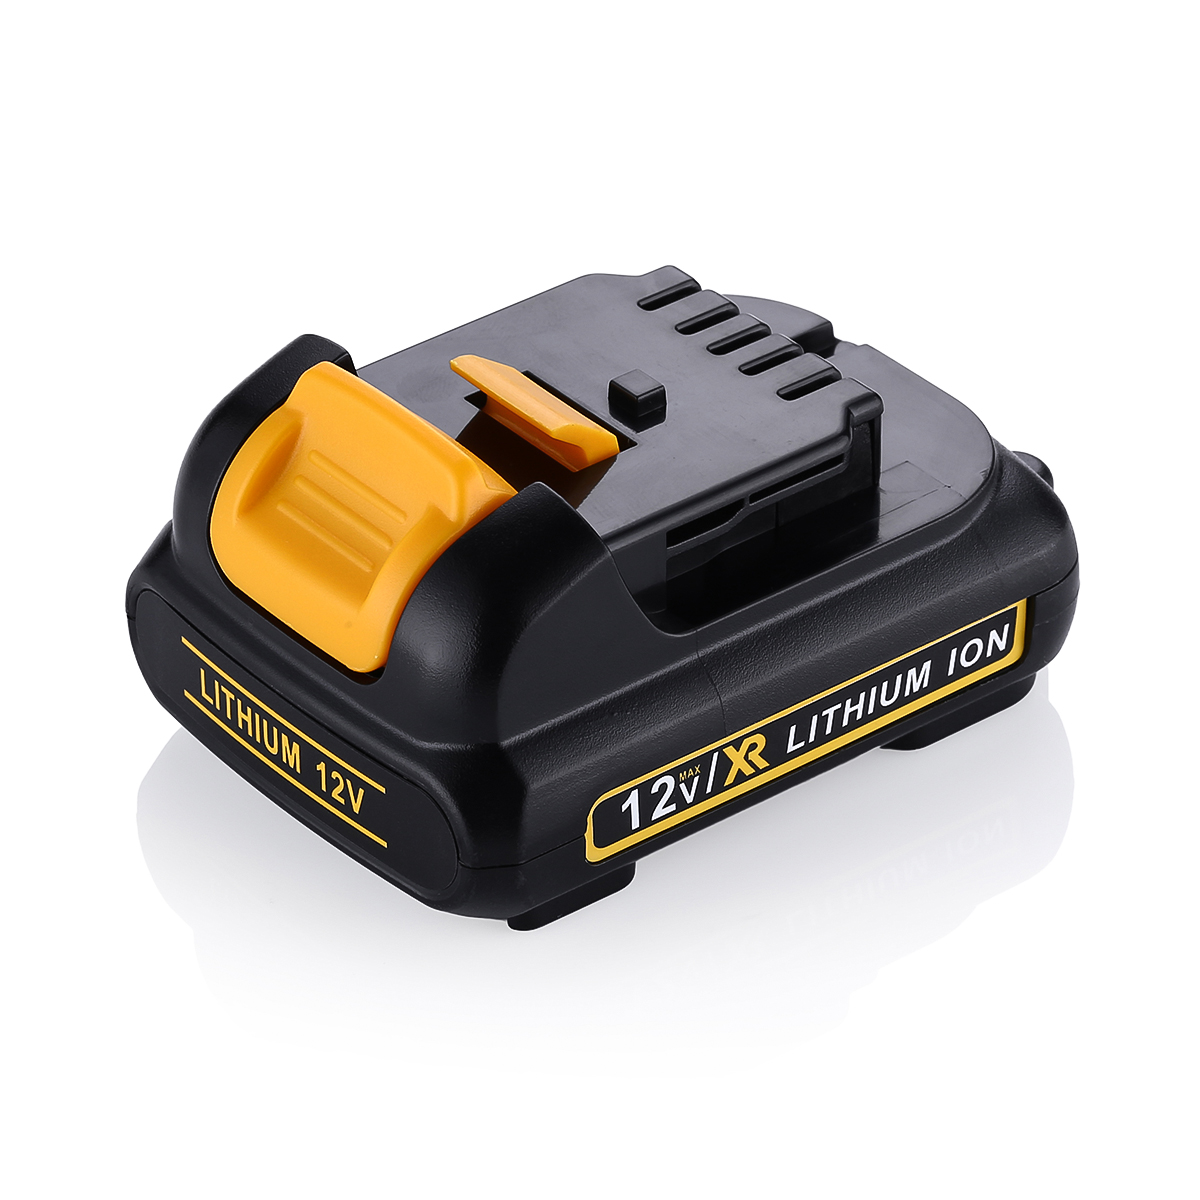 New 2 Pack for Dewalt DCB120 12V 12 Volt Max Lithium ion ...